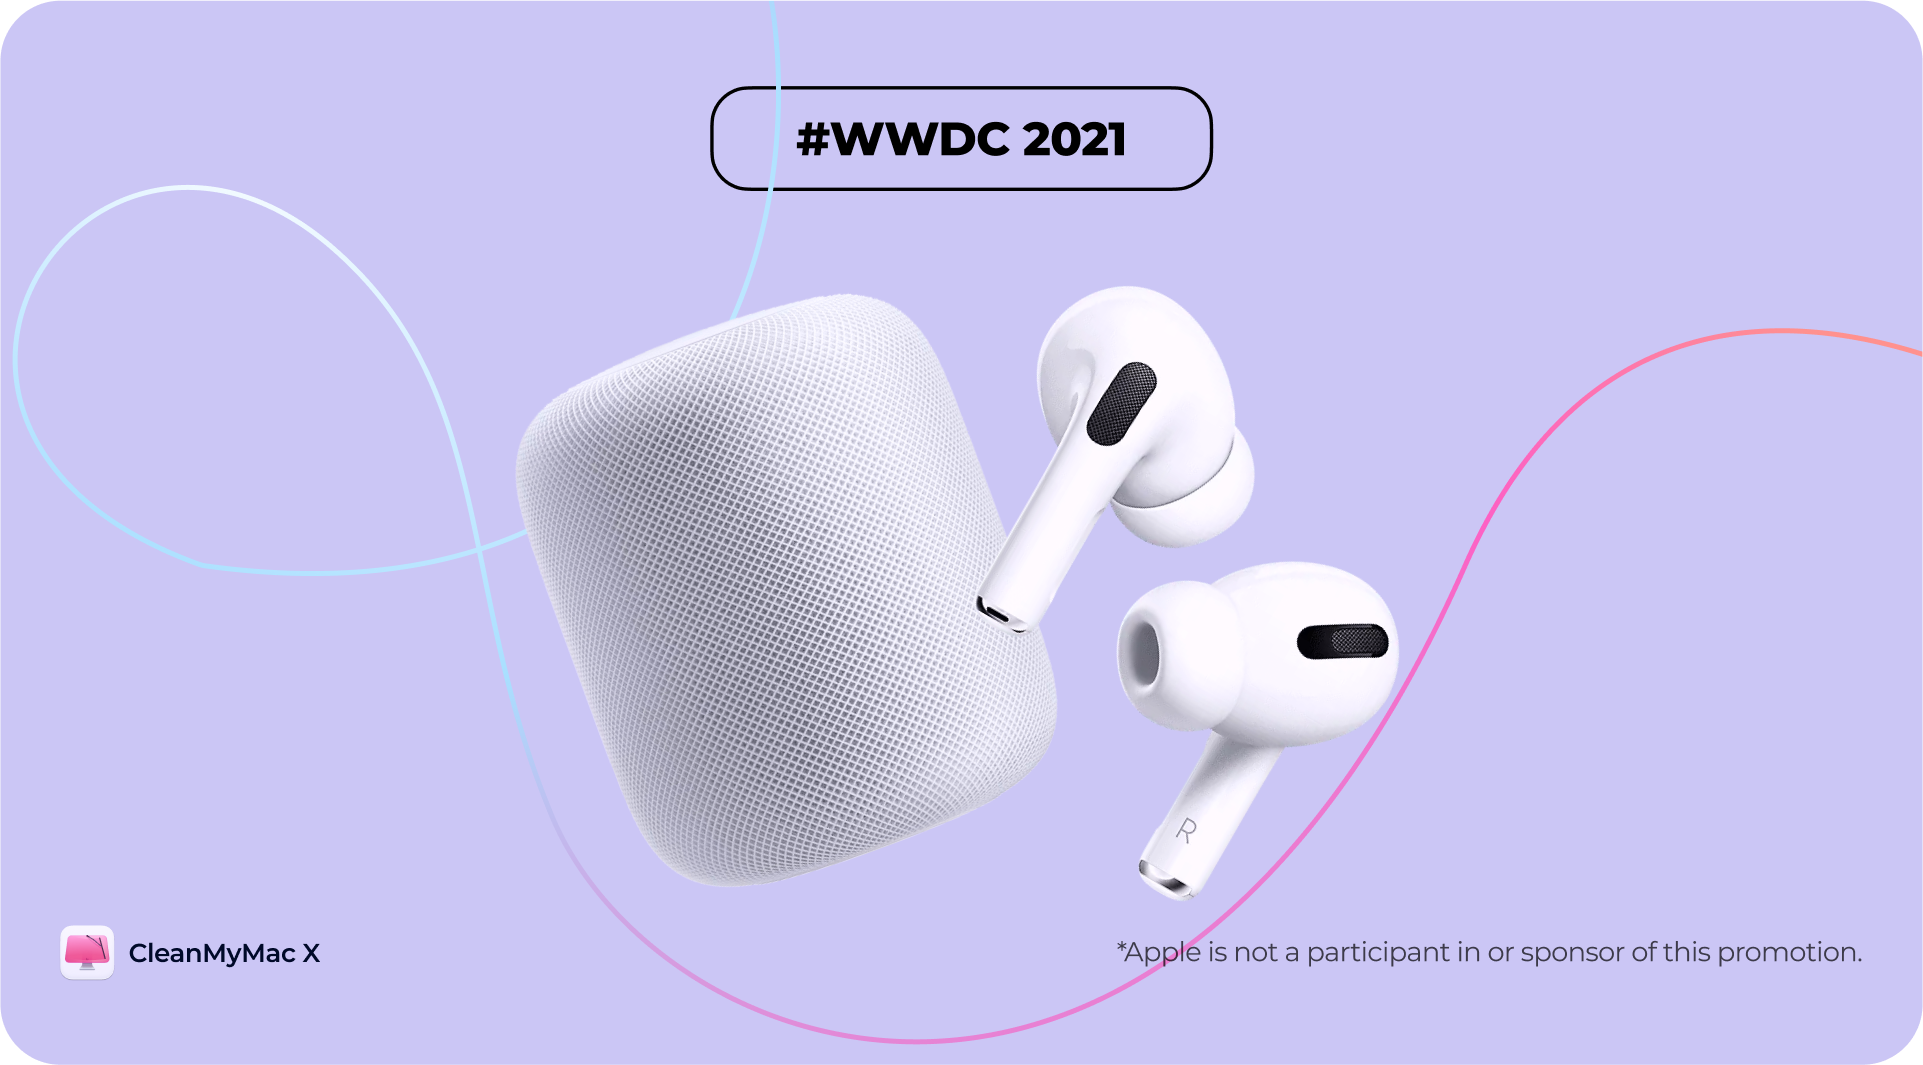 Win HomePod, AirPods Pro and other gifts